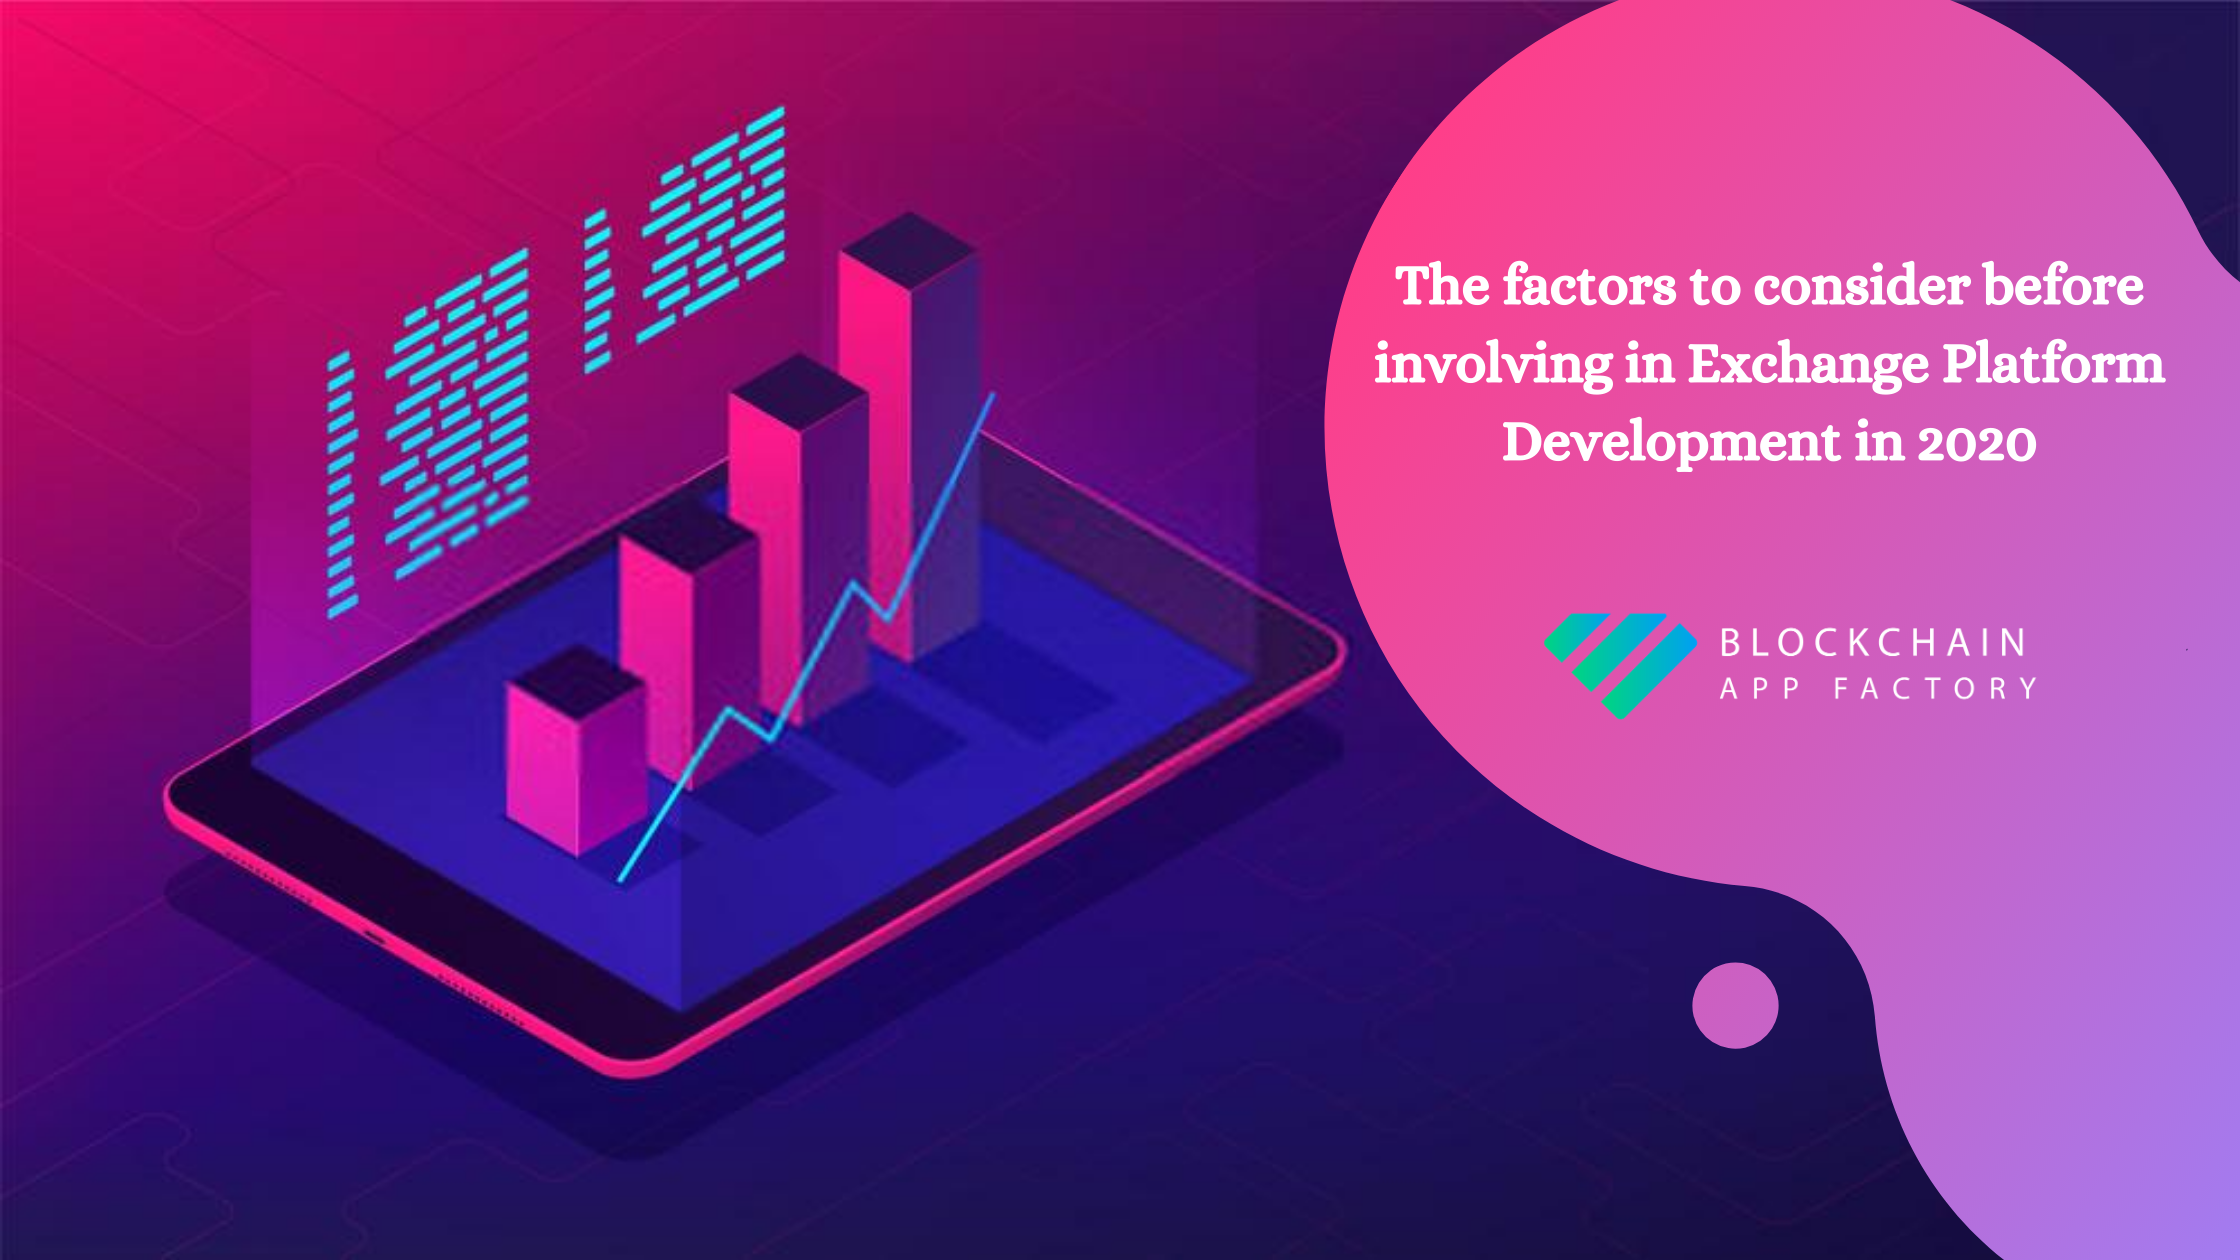 The factors to consider before involving in Exchange Platform Development in 2020